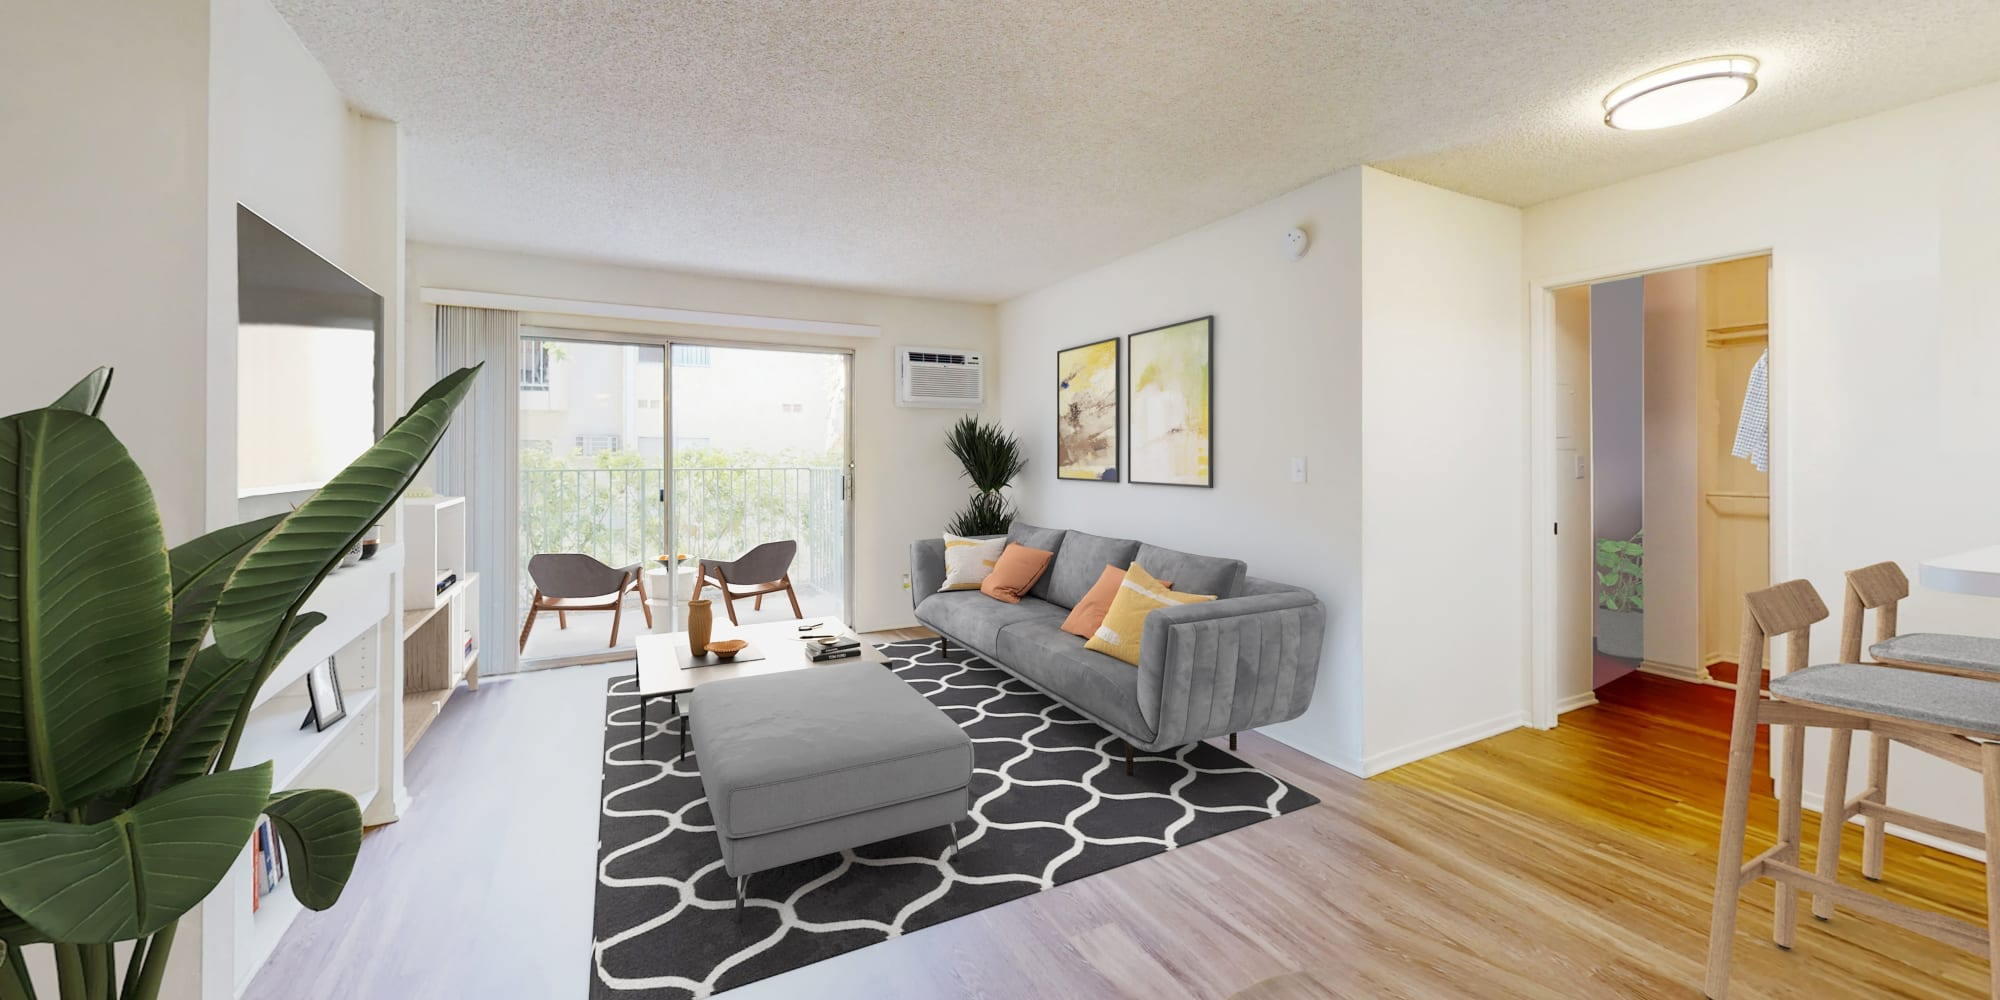 Open-concept living areas with hardwood-style flooring in a model home at Village Pointe in Northridge, California